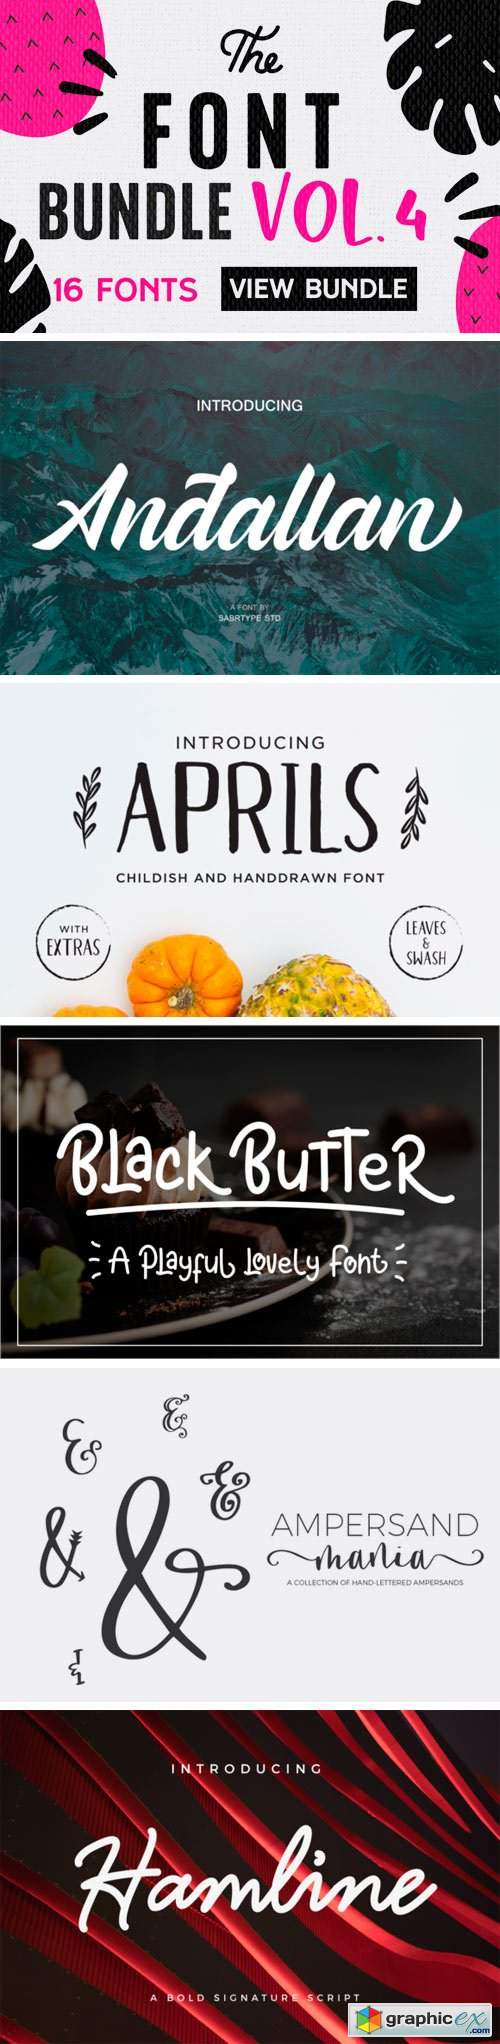 16 Premium Fonts Bundle Vol. 4